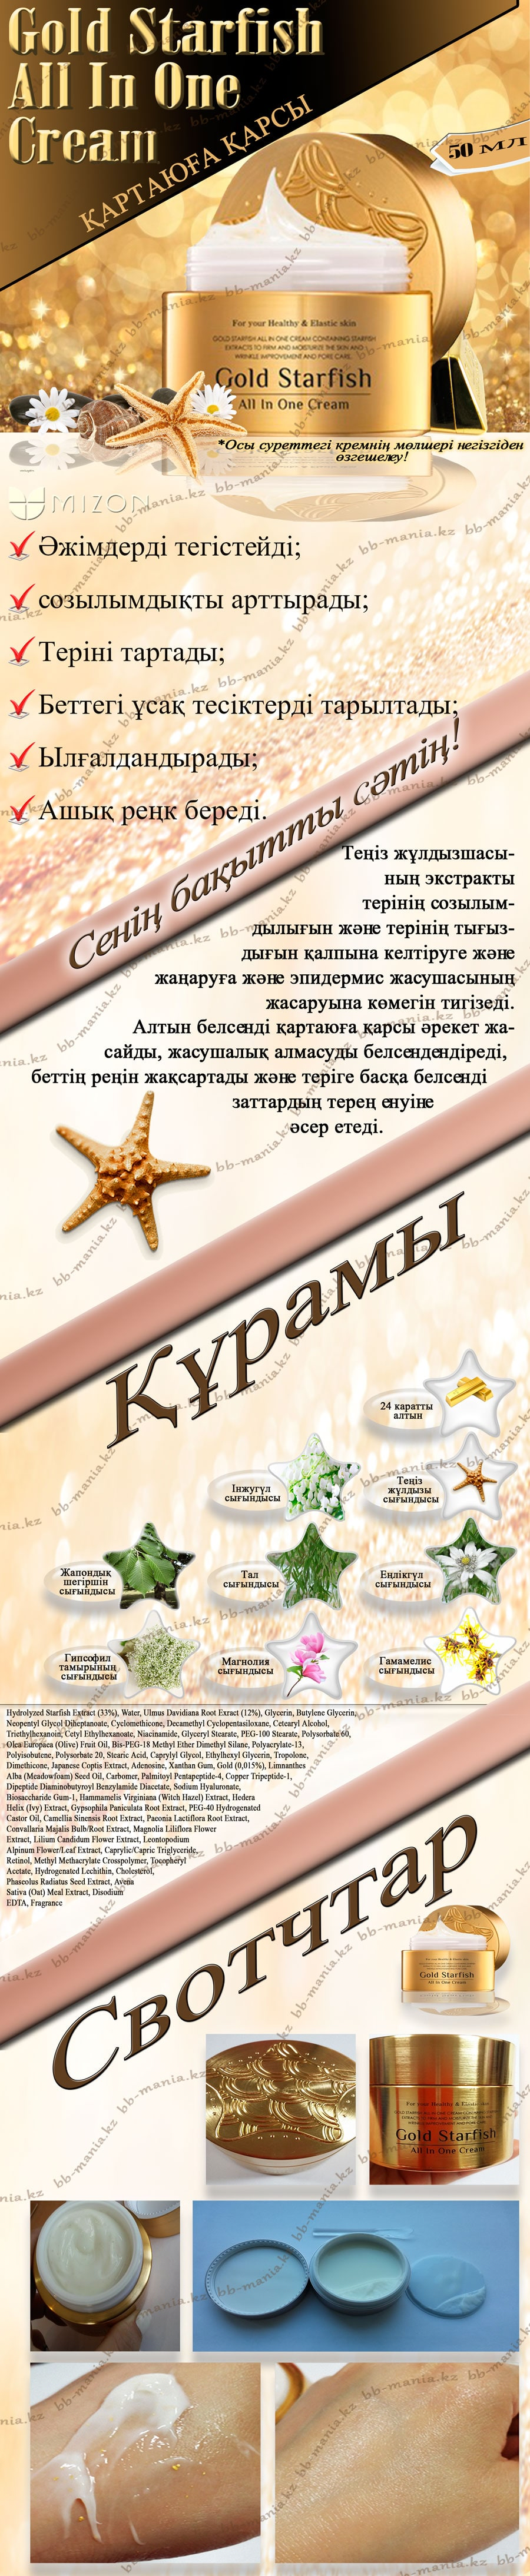 Gold-Starfish-All-In-One-Cream-кз-min